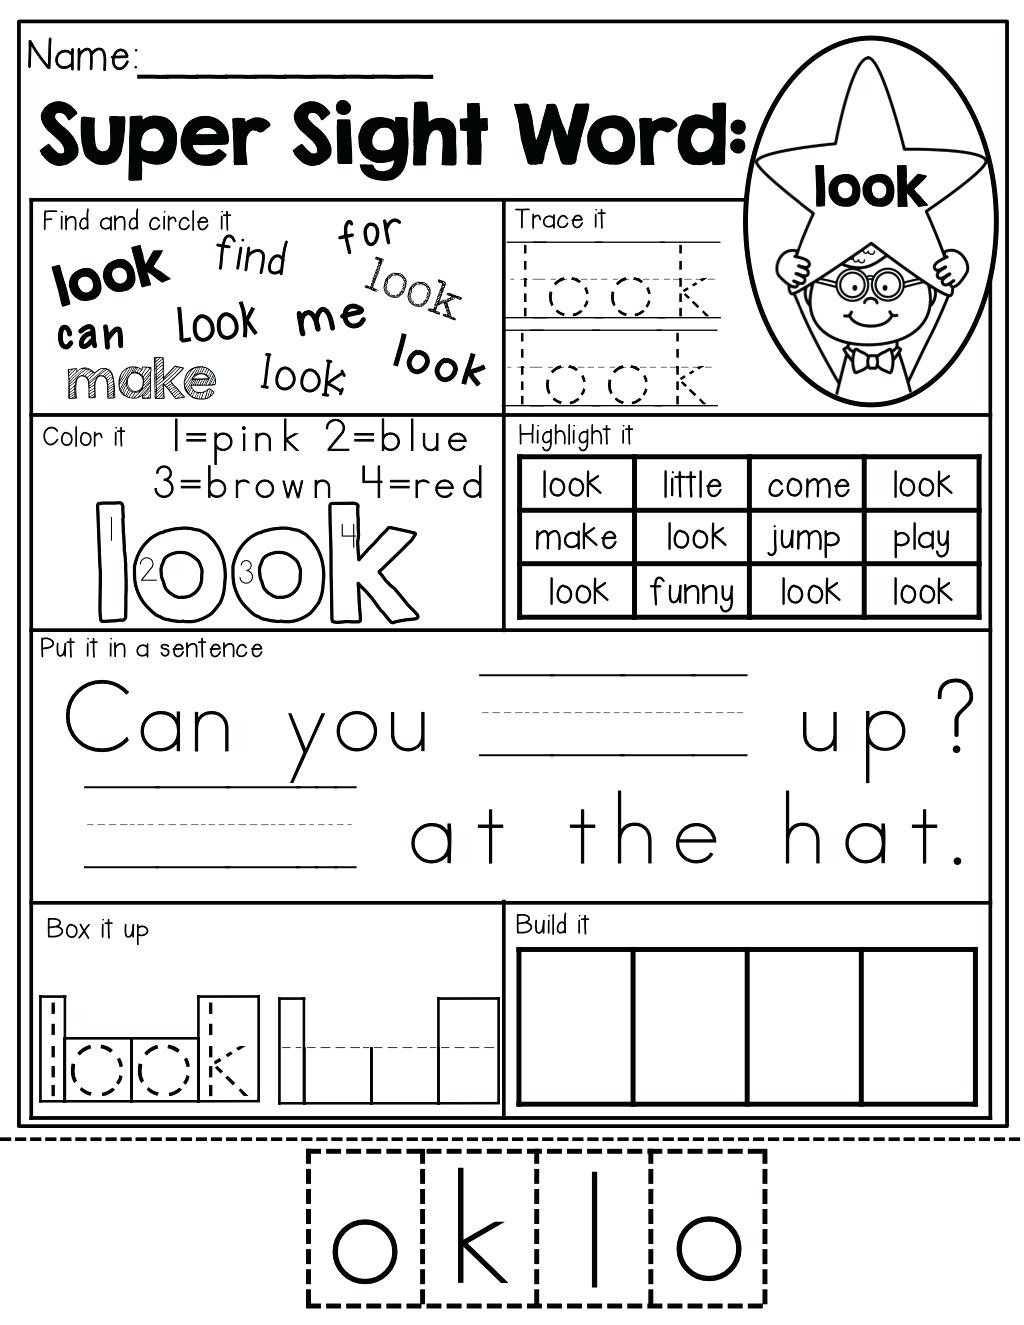 1st Grade Sight Word Worksheets 1st Grade Worksheet Sight Words for Free First Worksheets